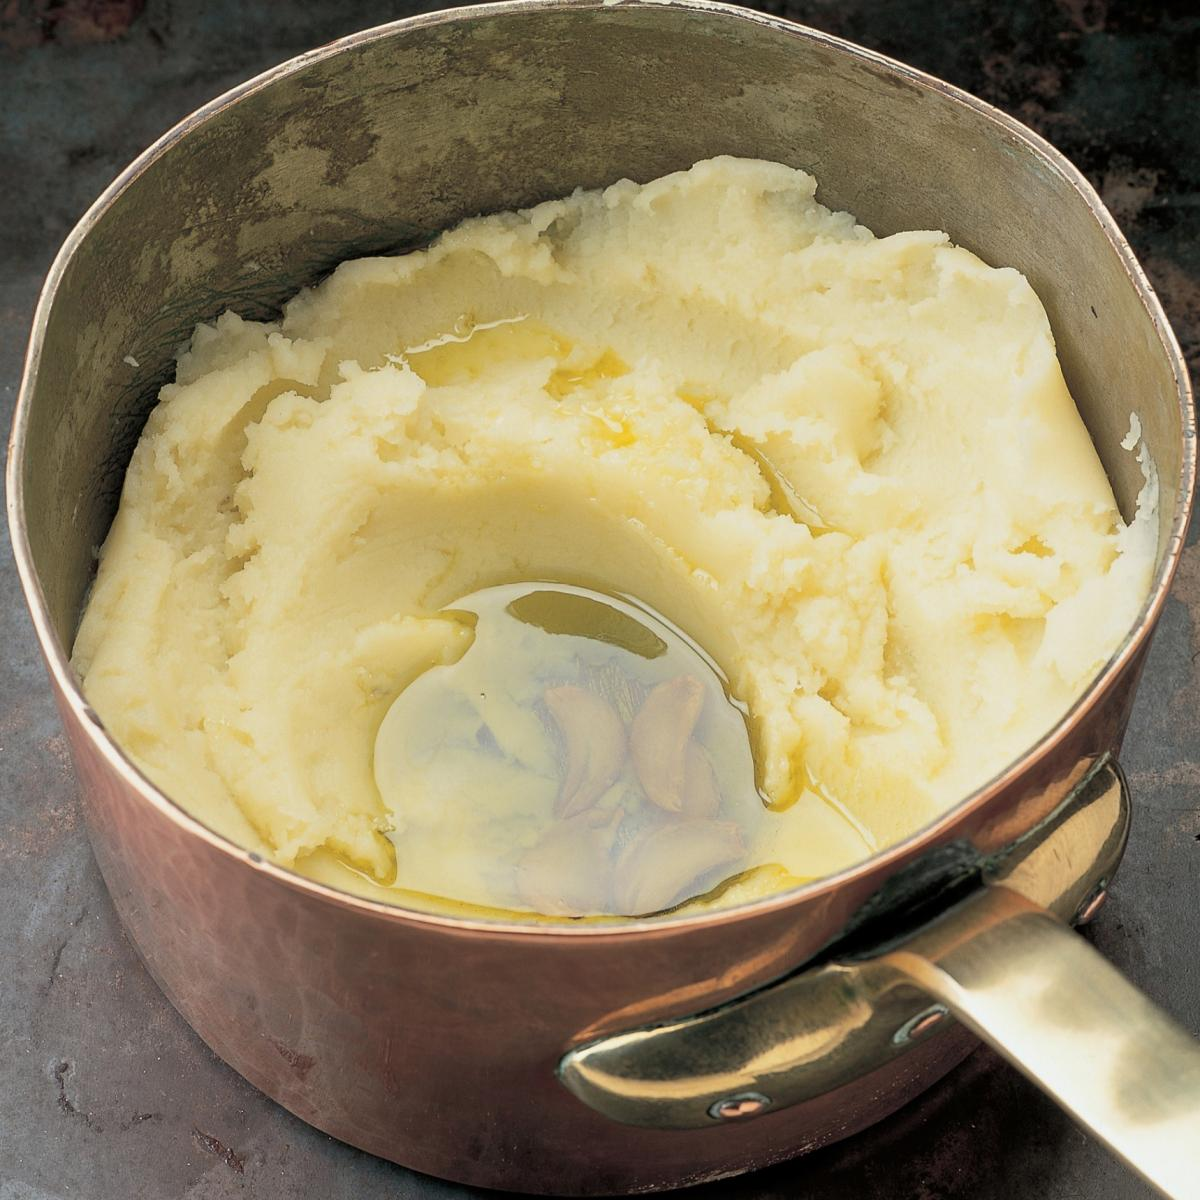 A picture of Delia's Mashed Potato with Garlic-infused Olive Oil recipe